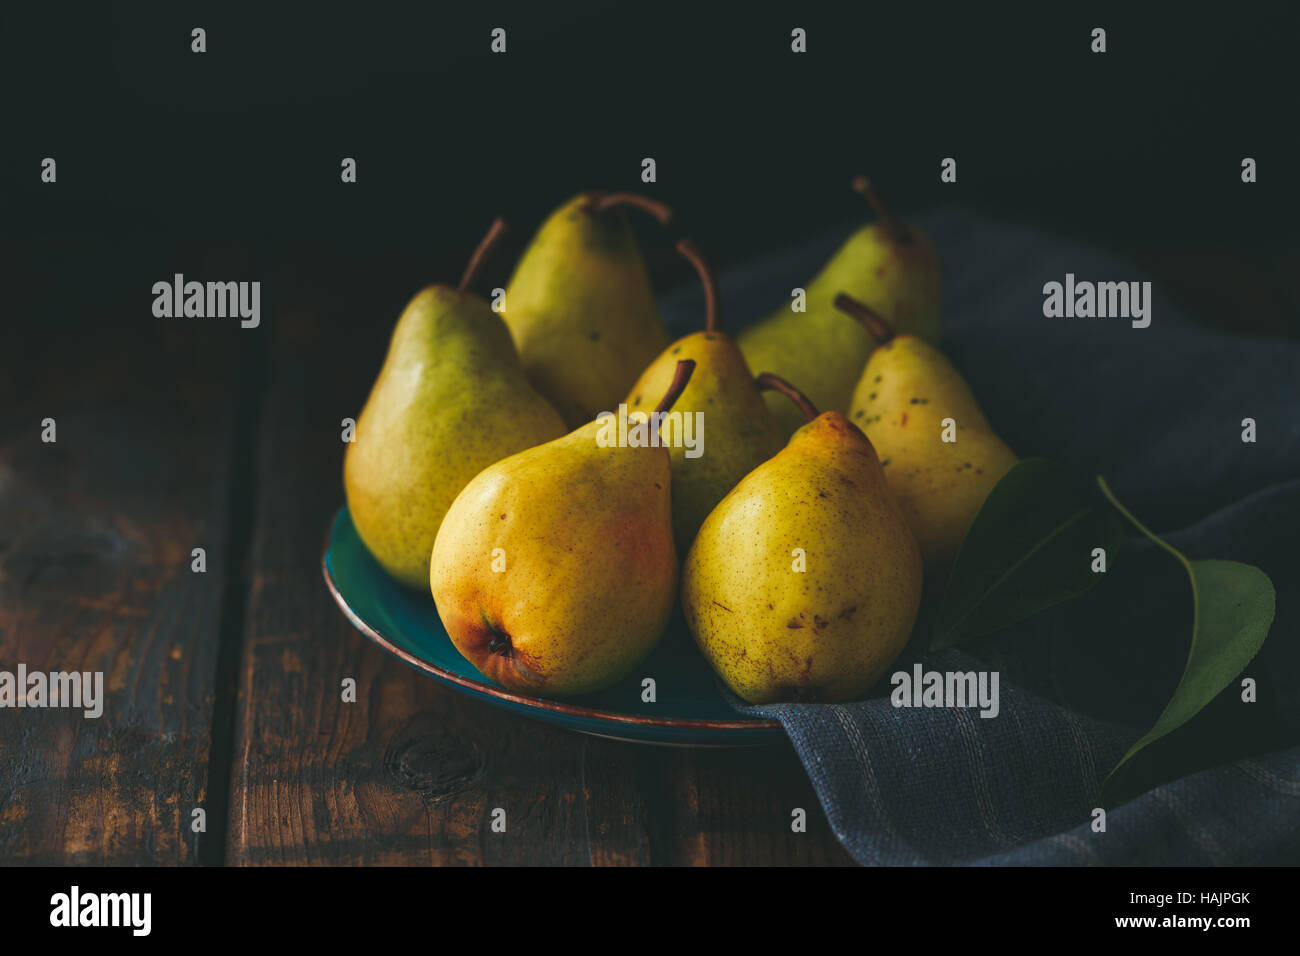 Pears on a plate, still life - Stock Image